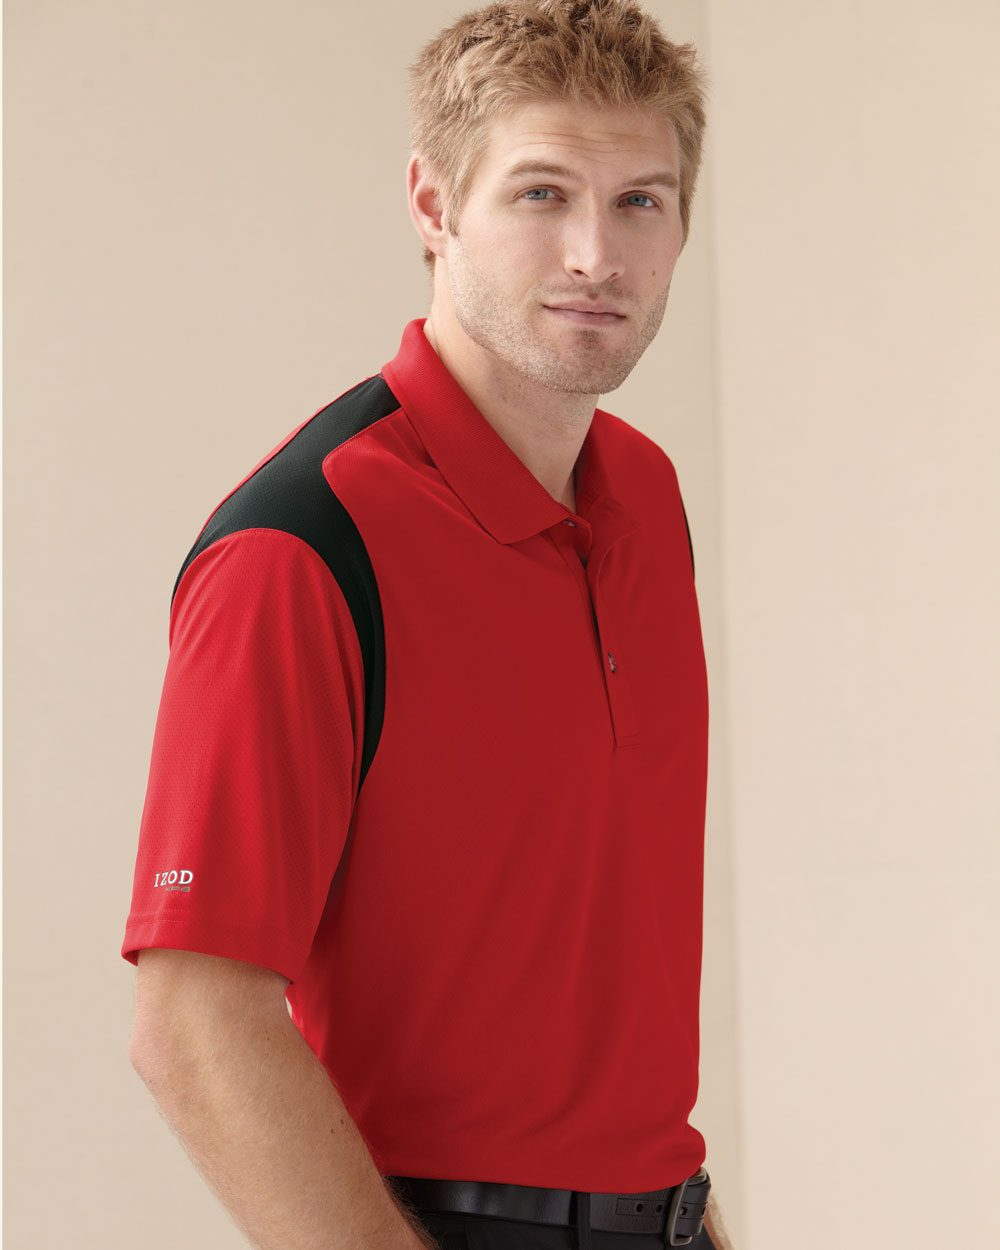 IZOD 13Z0095 Performance Sport Shirt with Contrast Color Inserts